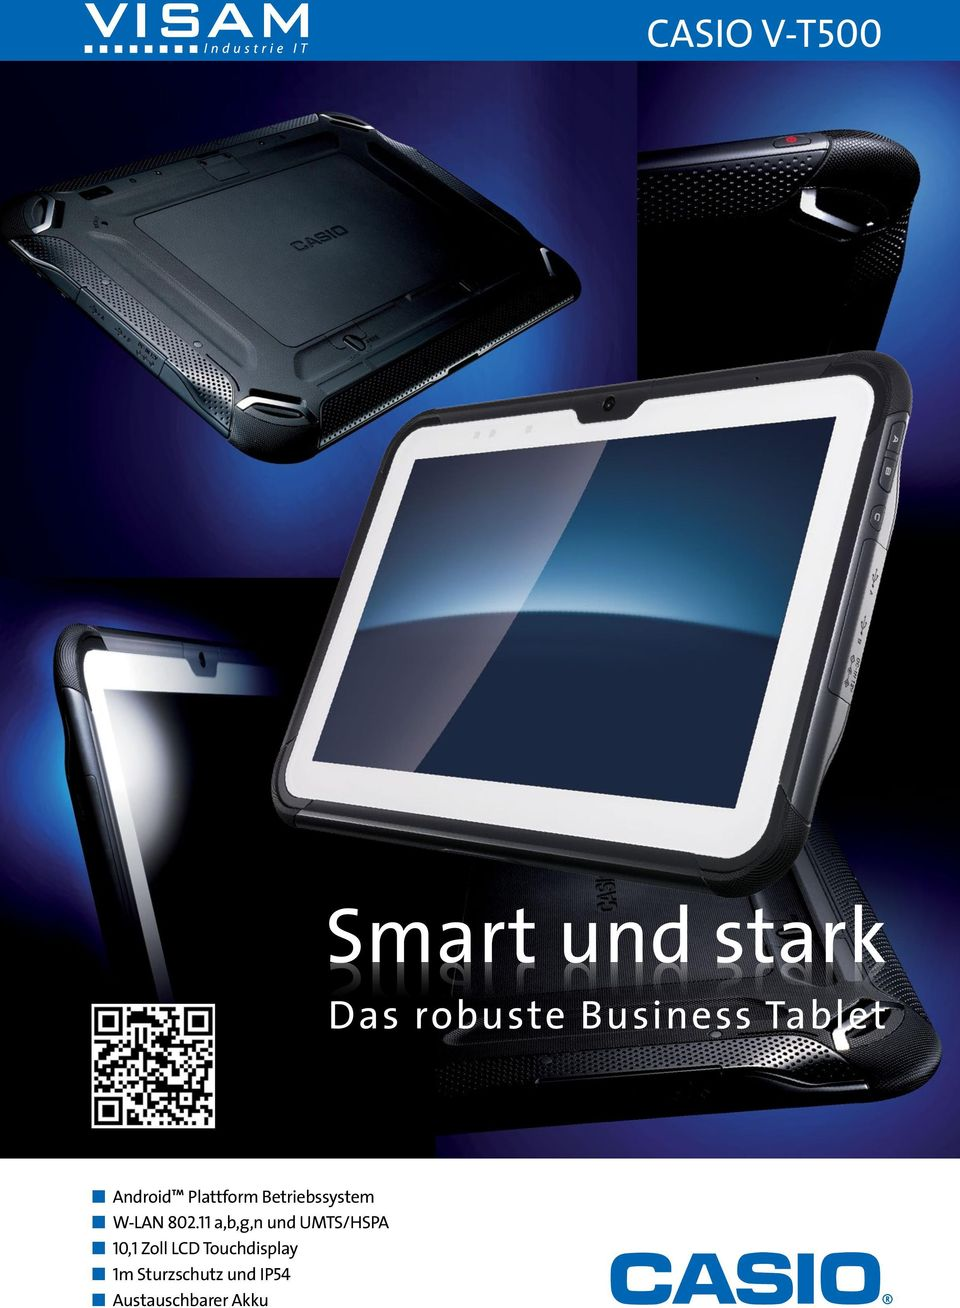 robuste Business Tablet n Android Plattform Betriebssystem